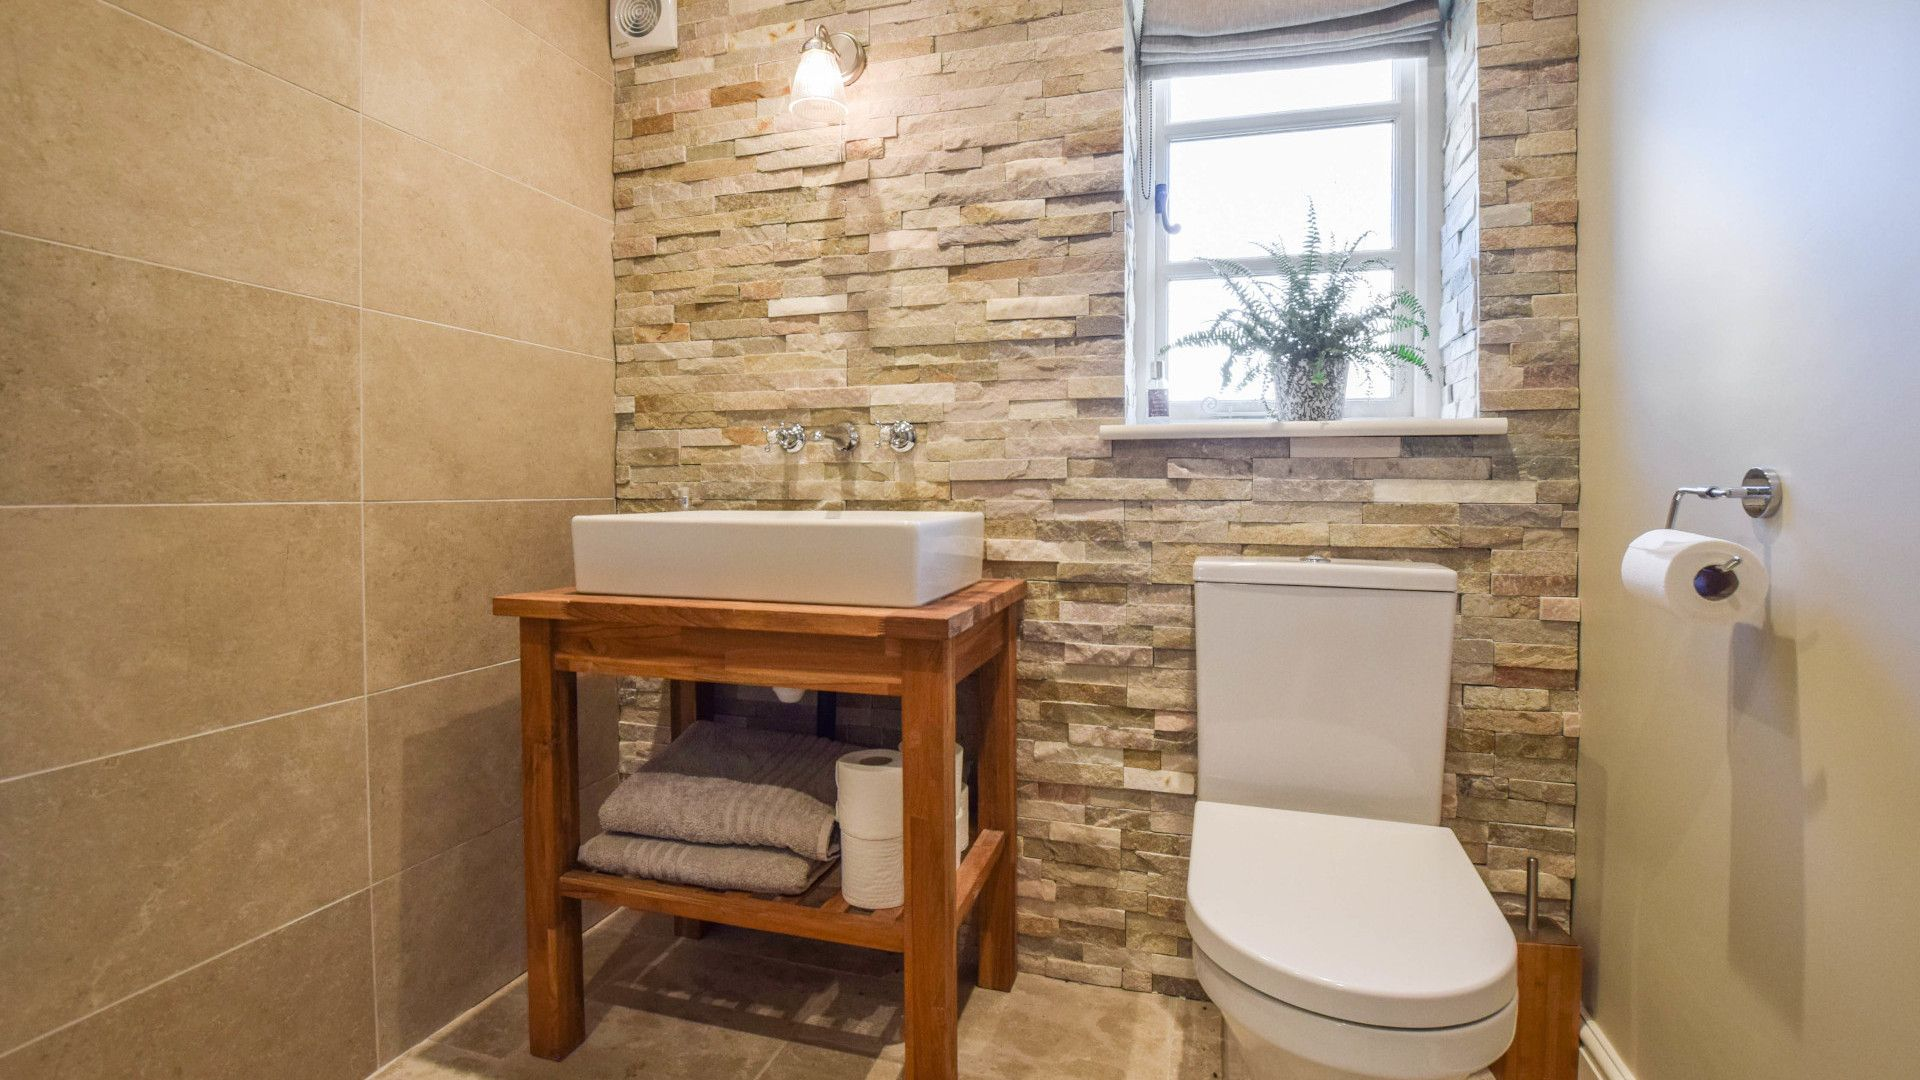 Downstairs shower room, Lovell Cottage, Bolthole Retreats